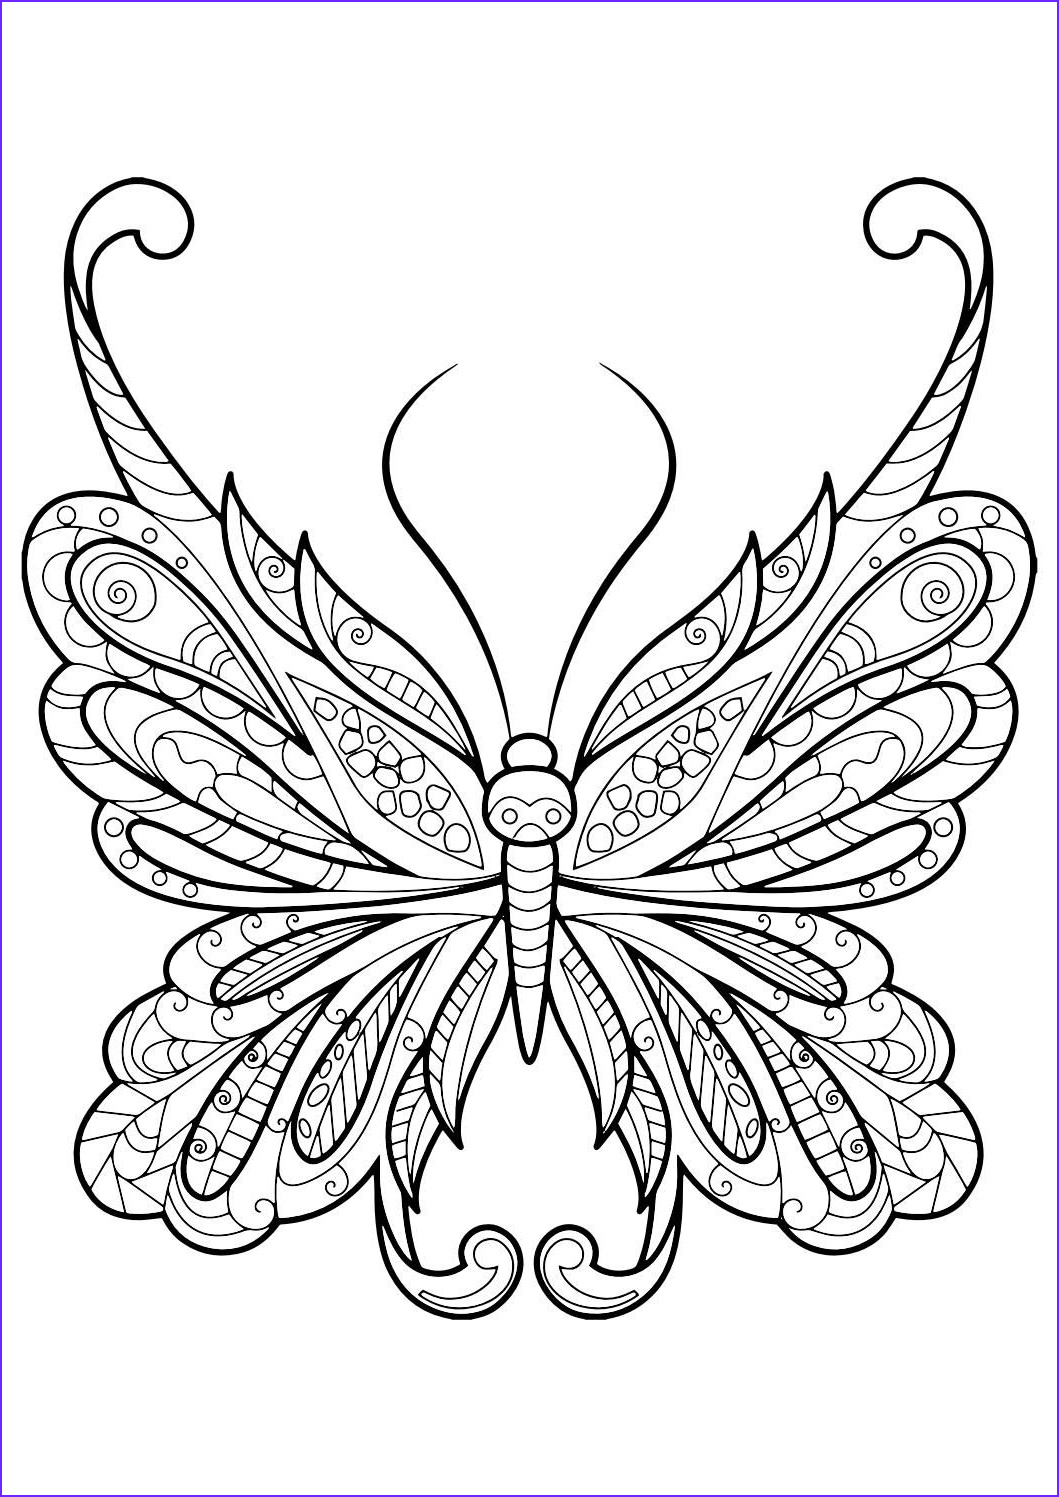 Easy Adult Coloring Pages Beautiful Collection Adult butterfly Coloring Book